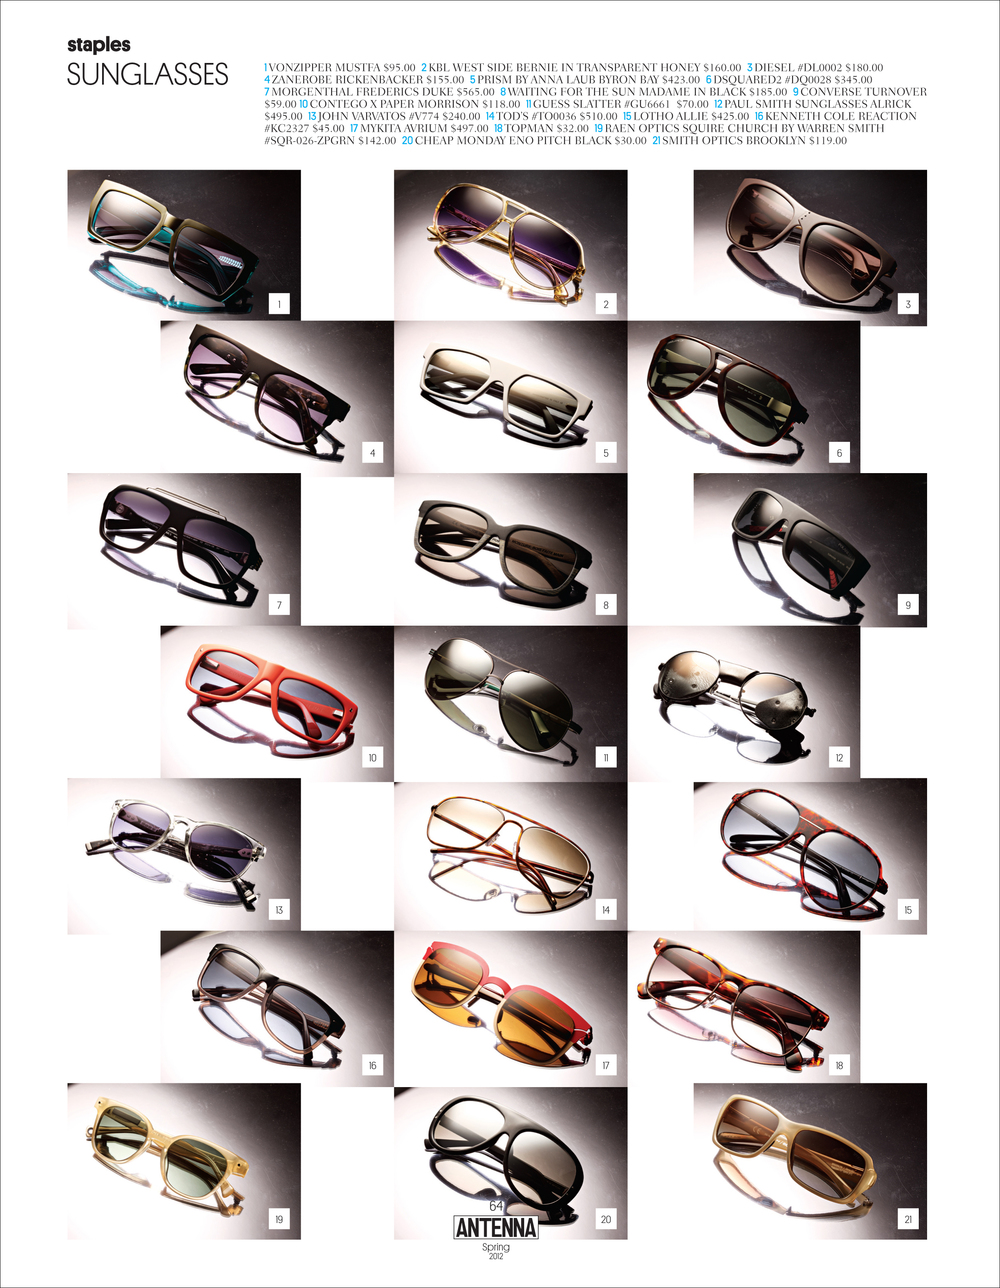 19 s sunglasses.jpg